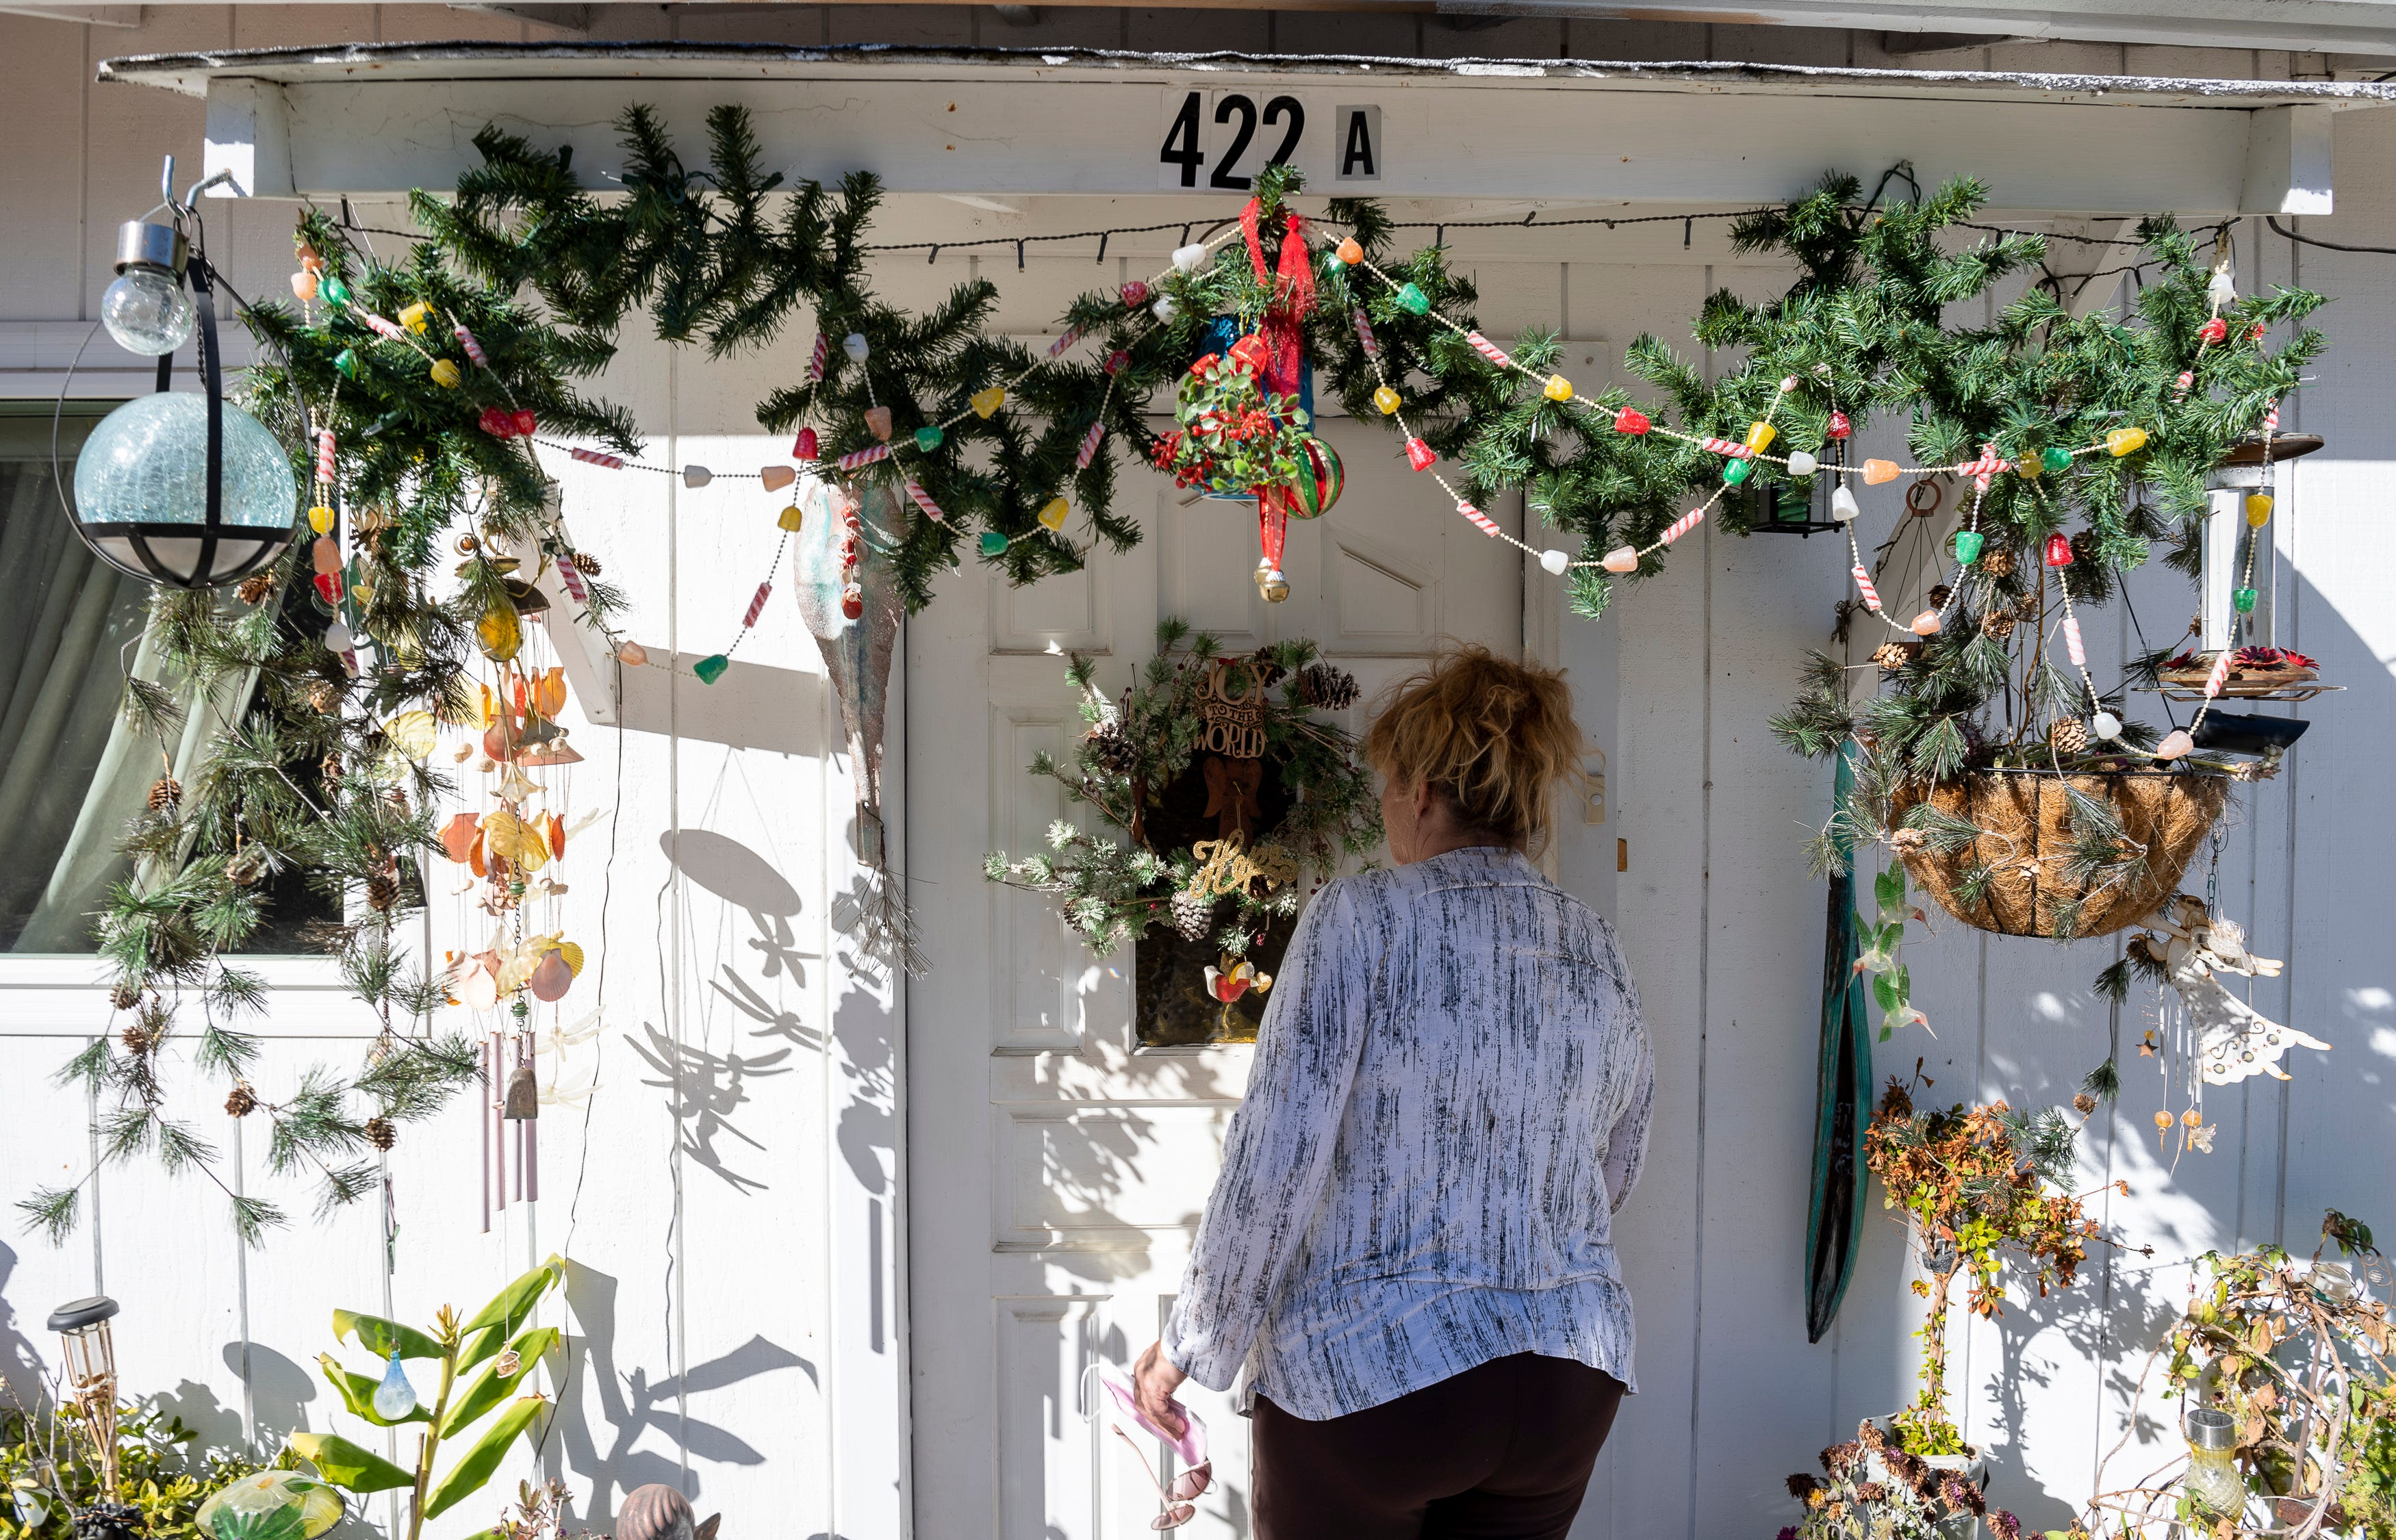 Susan Brzovich enters the home she rents in Prunedale, Calif., on Friday, Nov. 27, 2020.